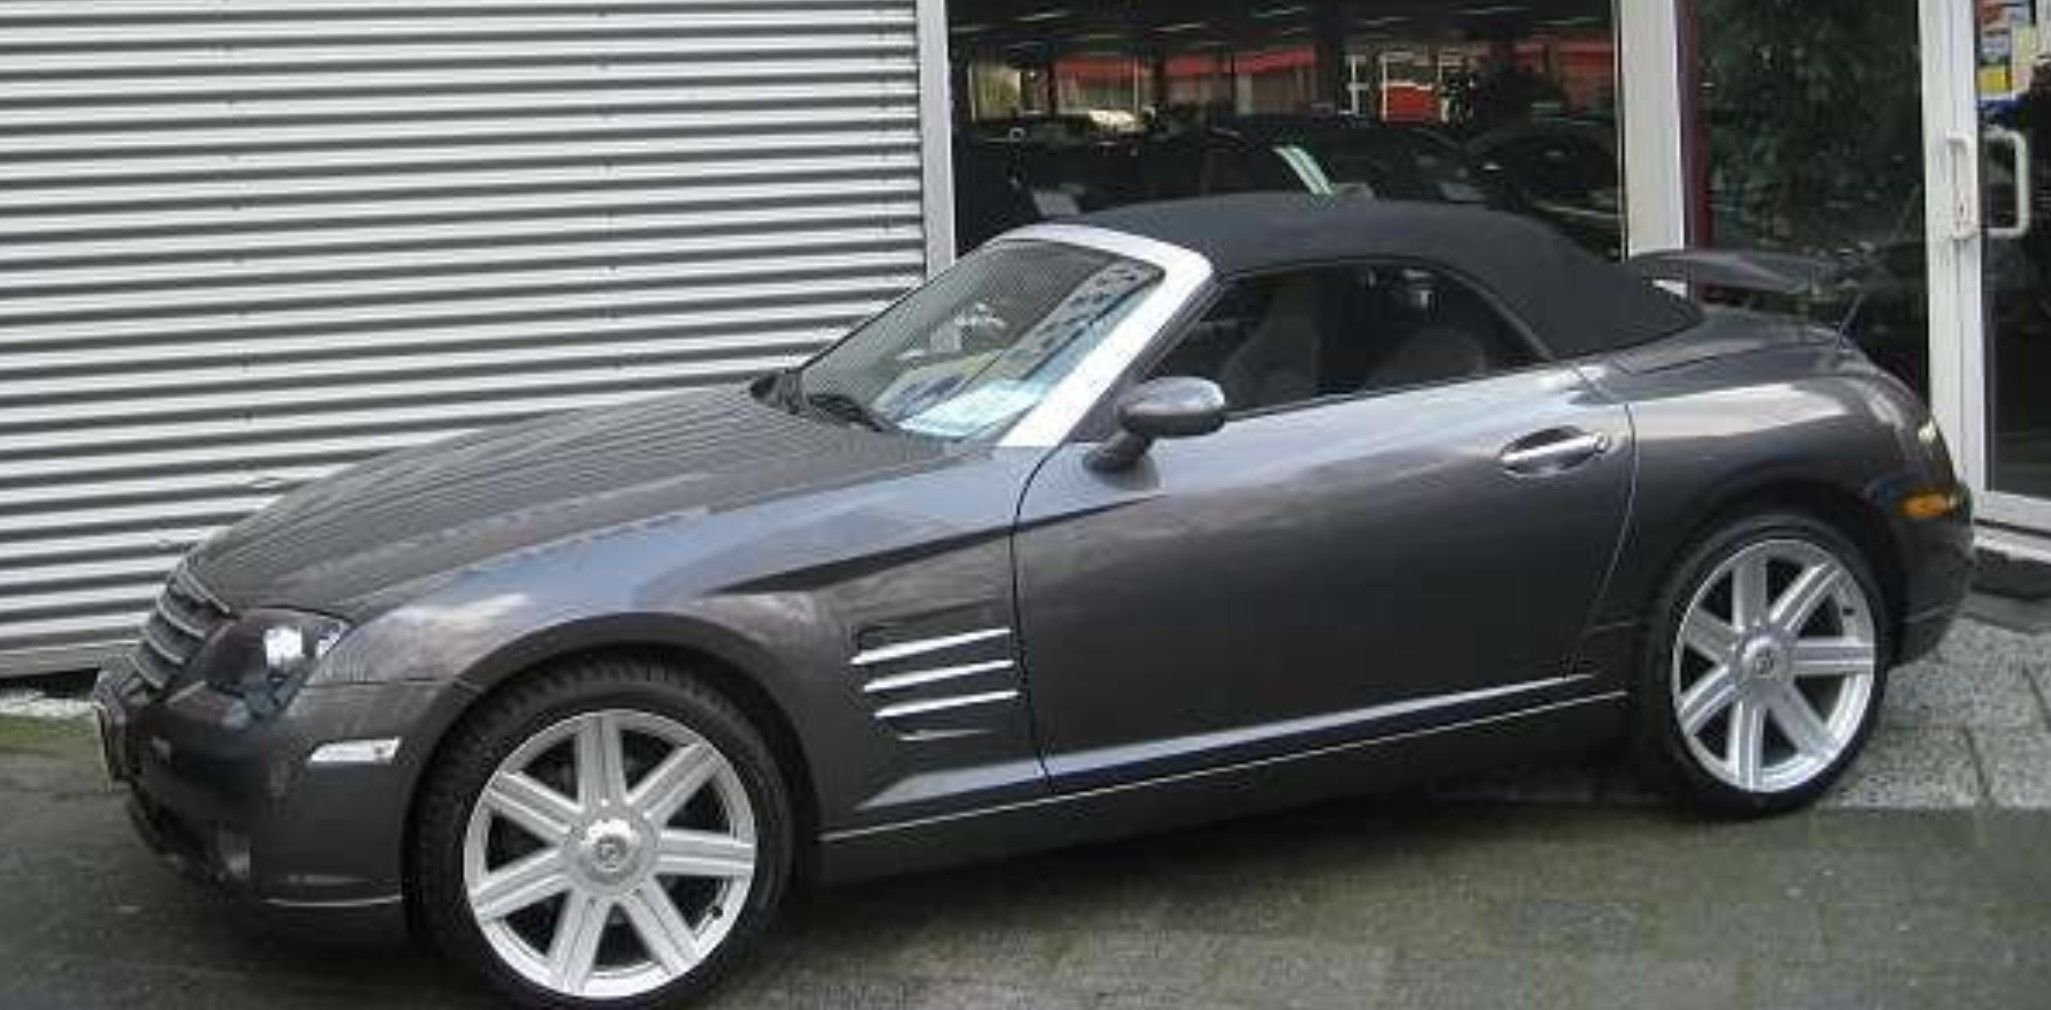 05 Chrysler Crossfire With Images Chrysler Crossfire Chrysler